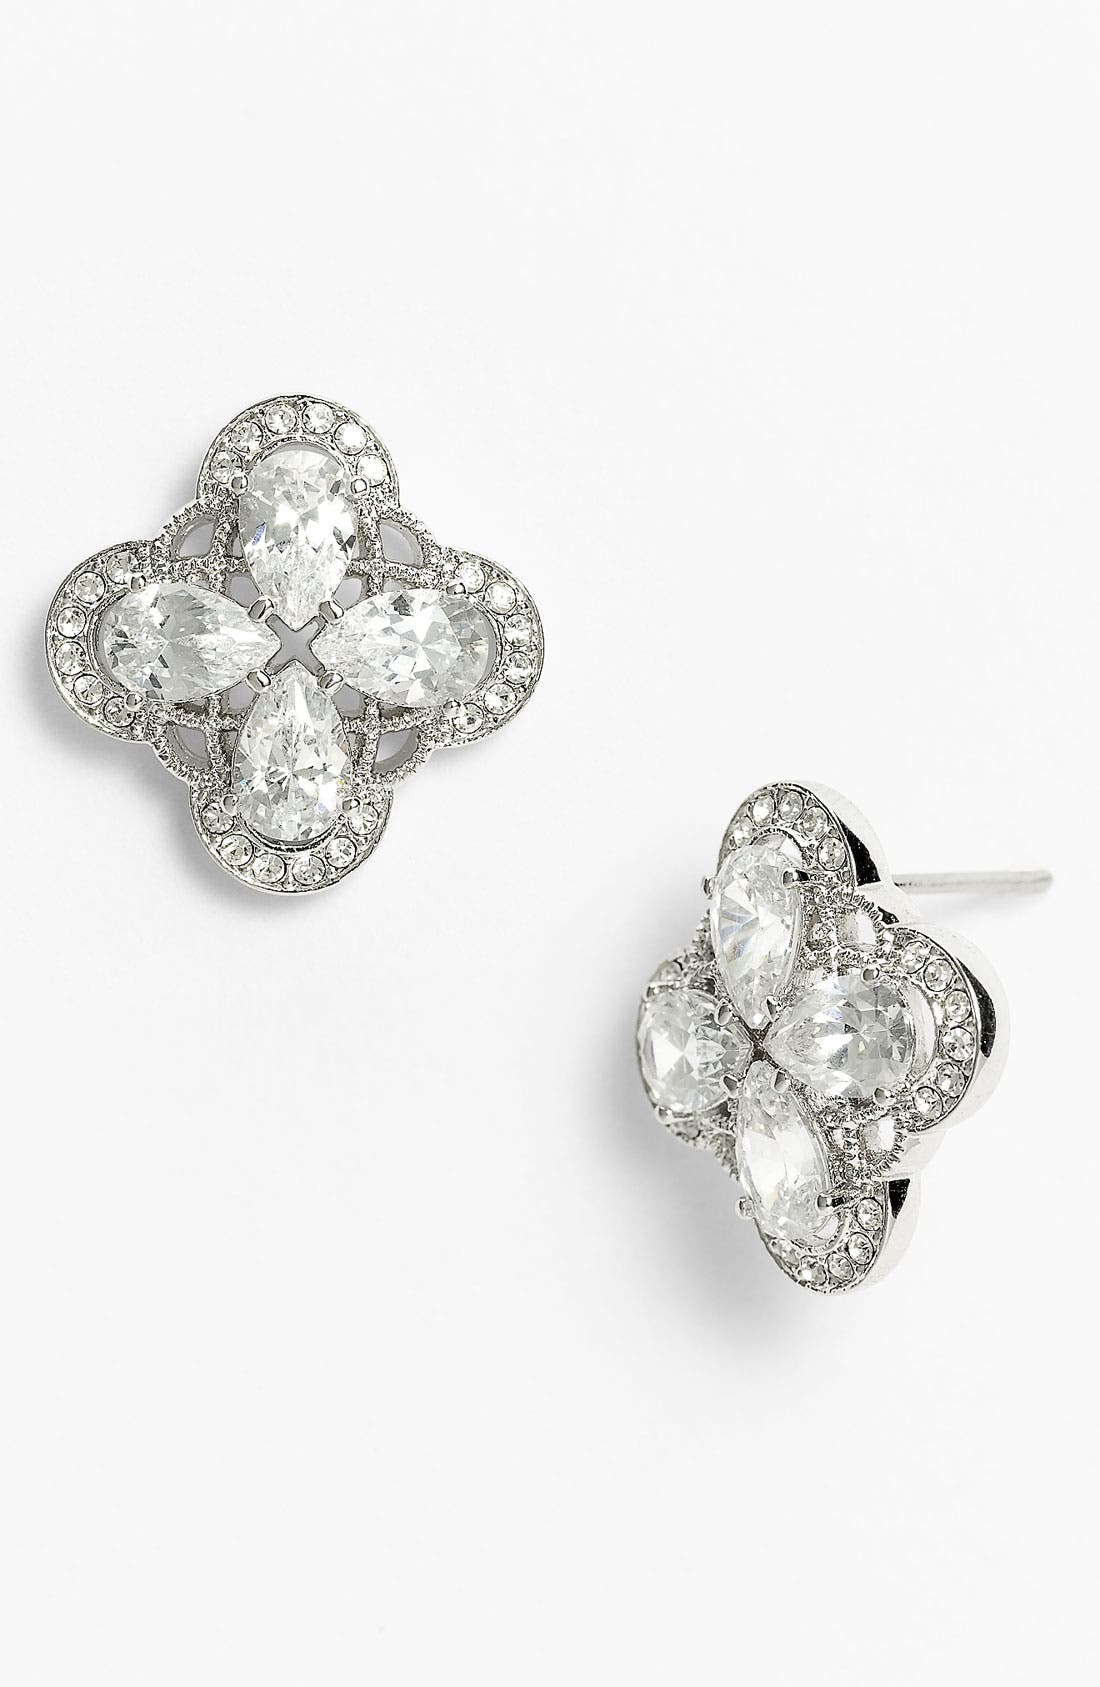 Alternate Image 1 Selected - Nadri 'Ariel' Button Stud Earrings (Nordstrom Exclusive)